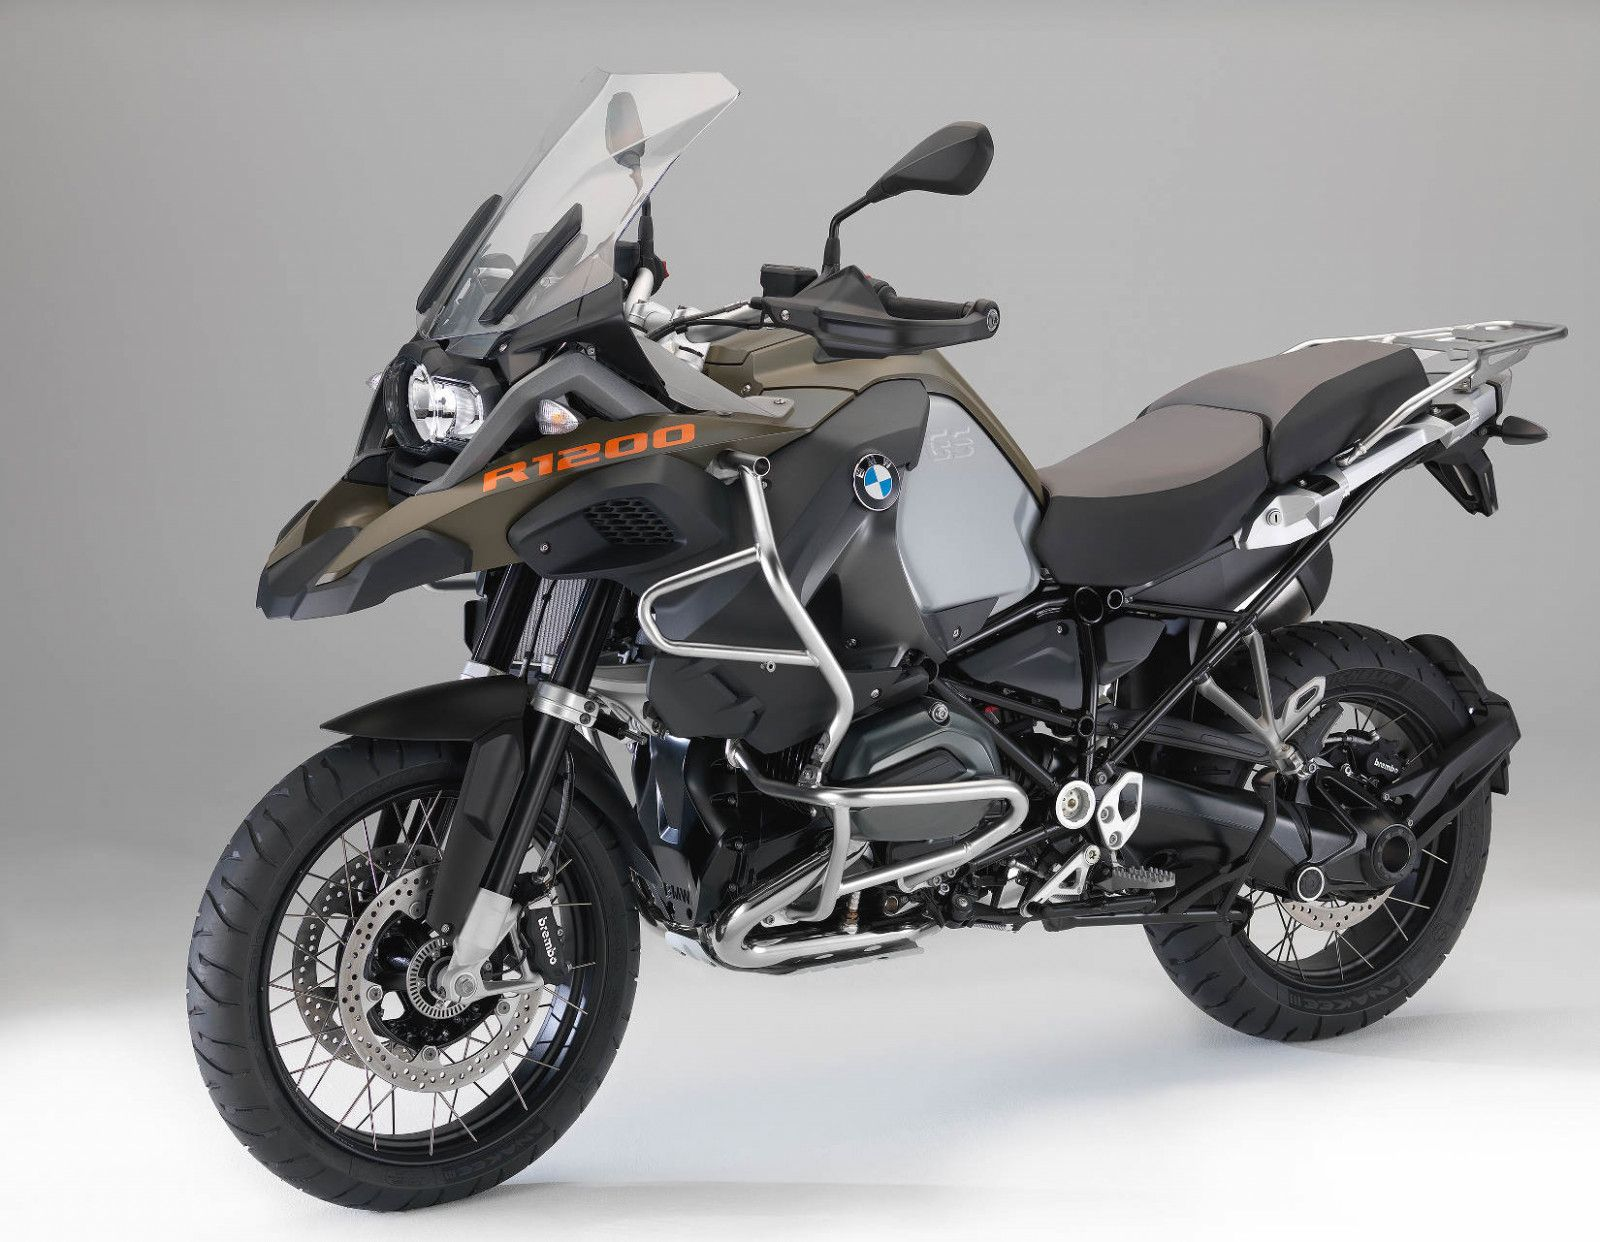 Bmw R1200gs Adventure 2020 Specs And Review 2020 Car Reviews Bmw S1000rr Bmw Kendaraan